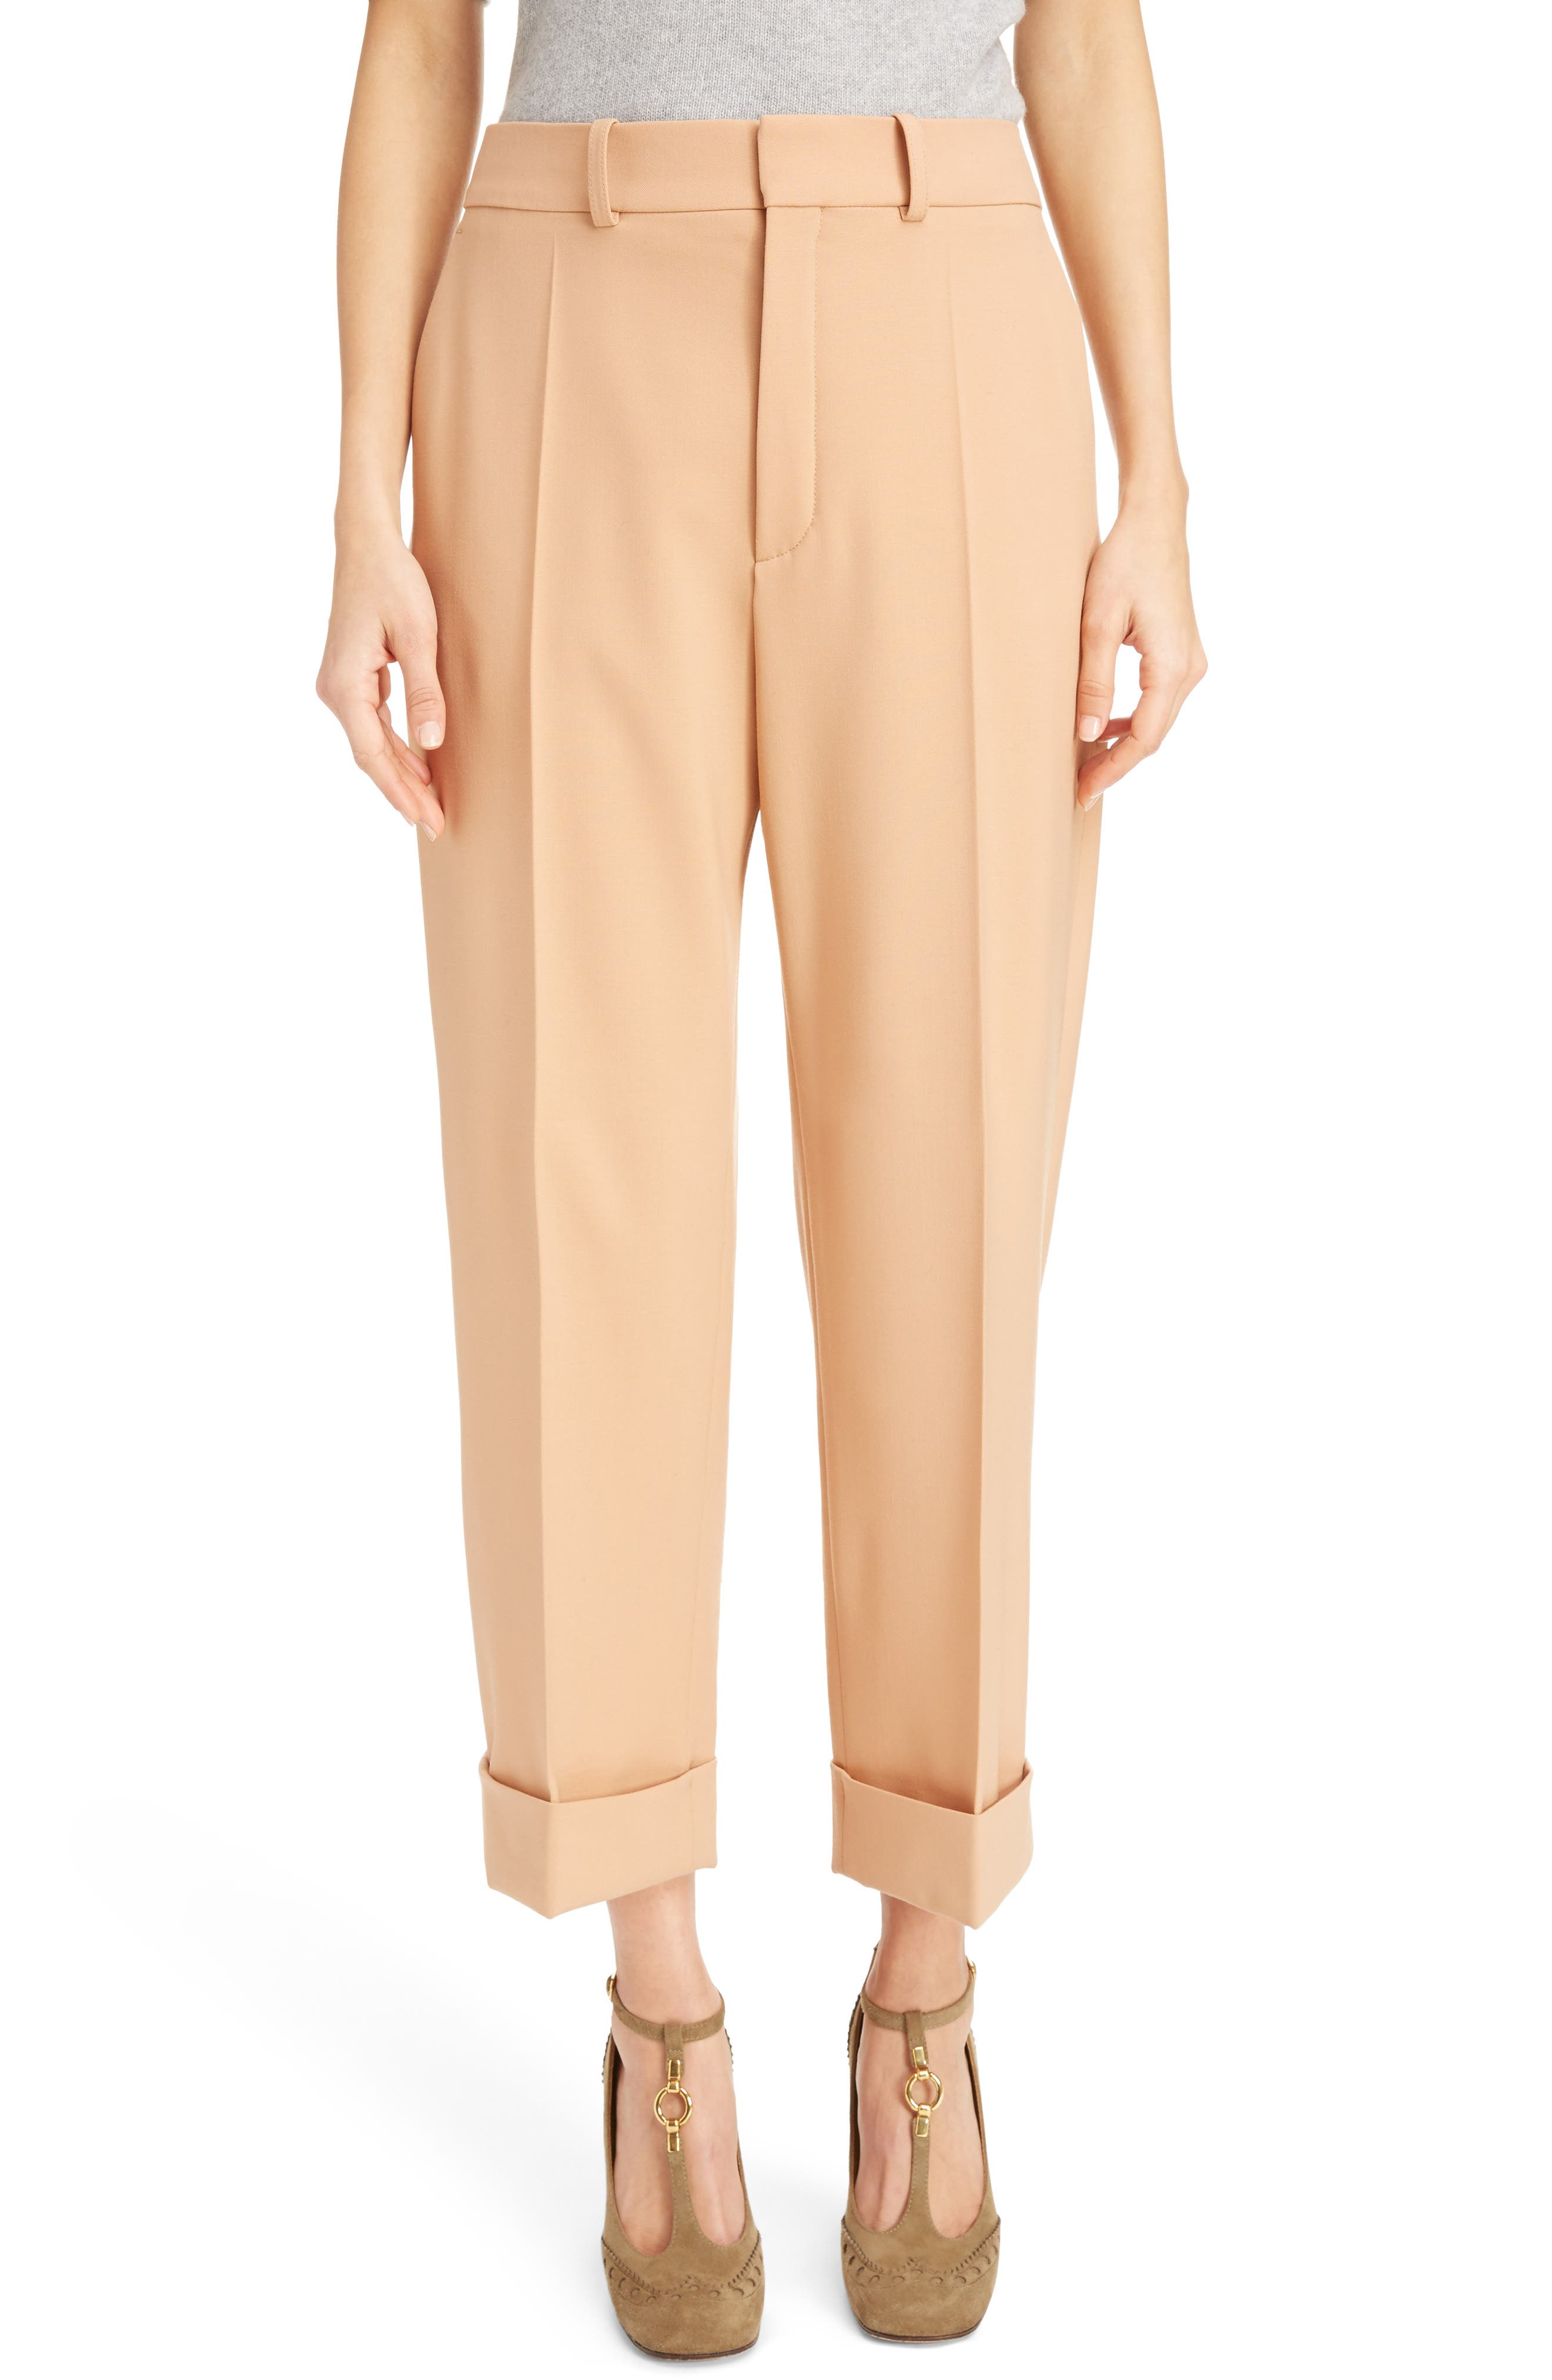 Chloé Cuffed Stretch Wool Pants